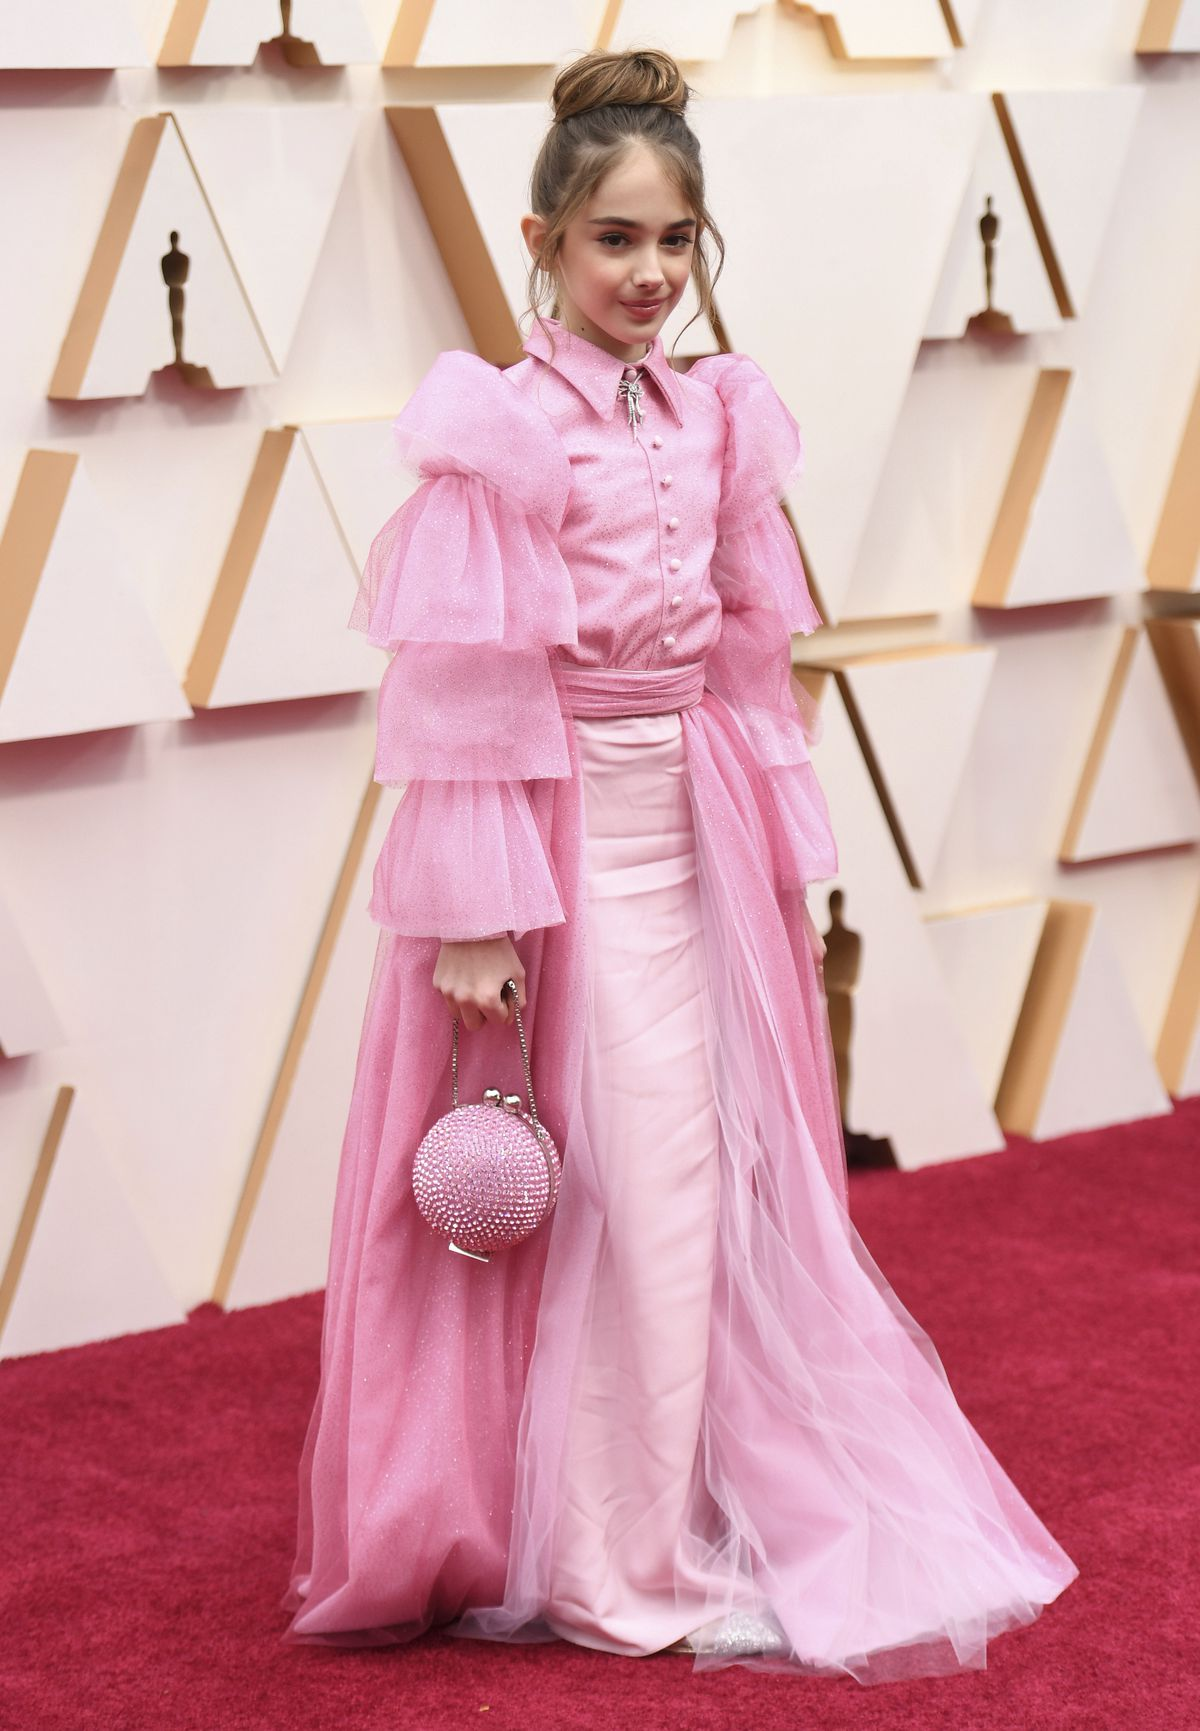 """Ten-year-old Julia Butters, currently featured in """"Once Upon a Time in Hollywood,"""" arrives at the Oscars on Sunday in Los Angeles. Butters collaborated with designer Christian Siriano on her pink gown and accessories."""